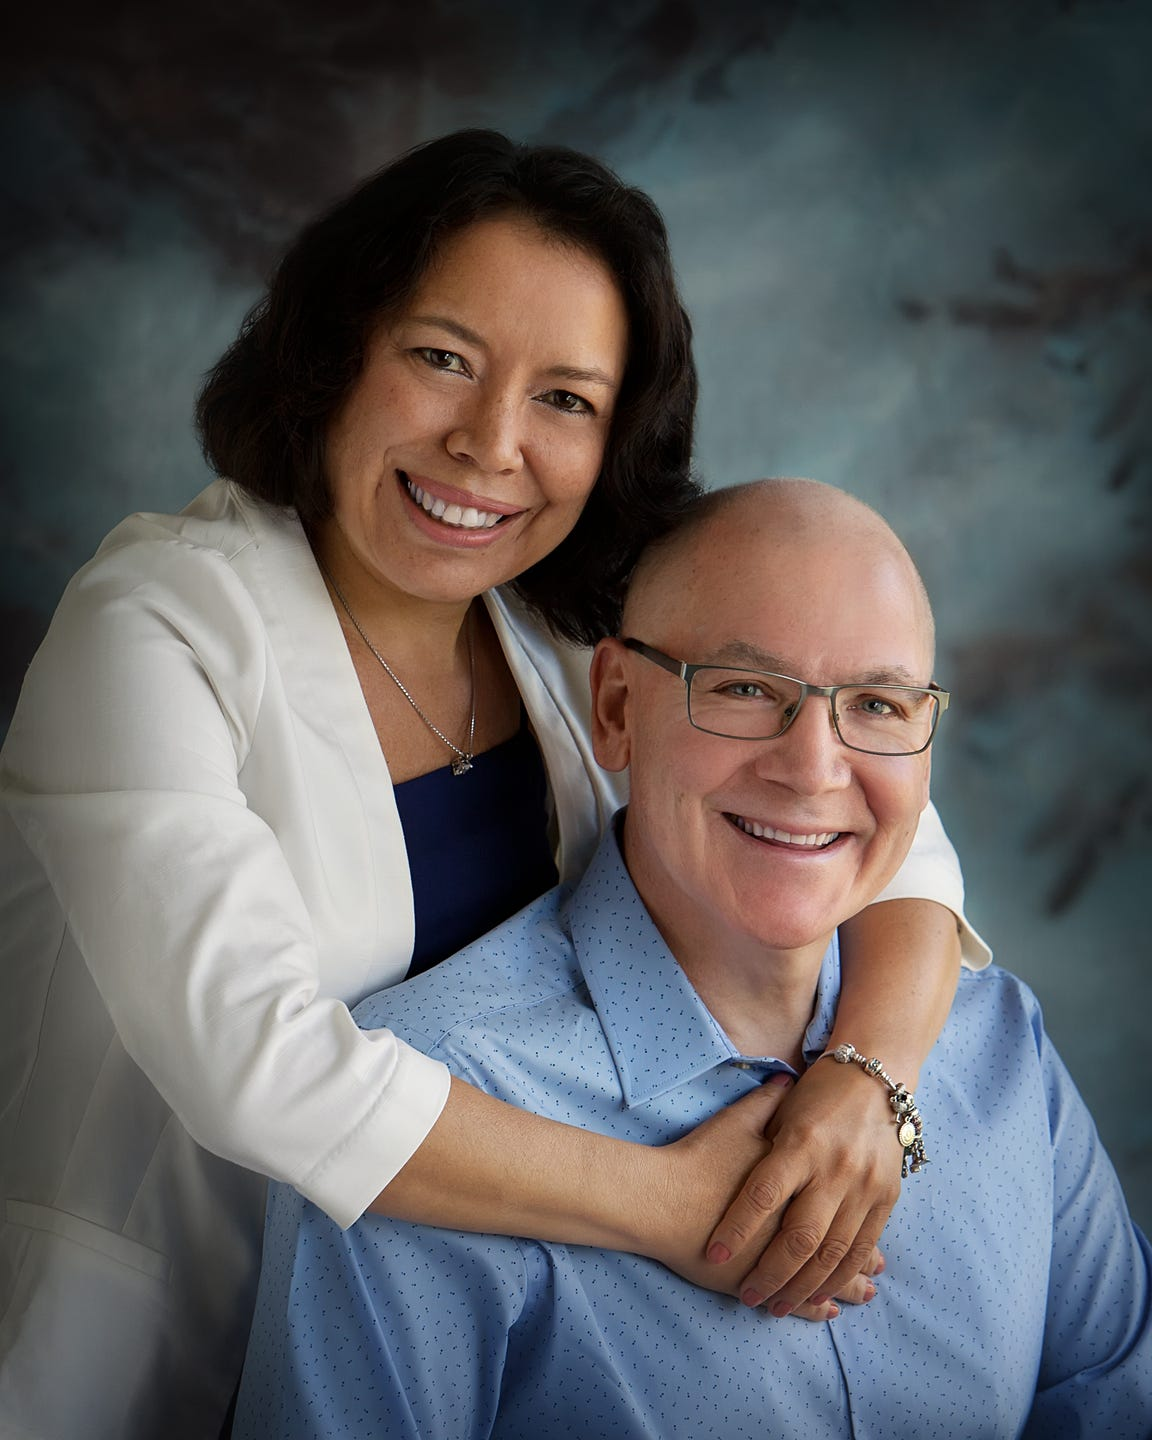 John Steiner and with his wife, Gina. Steiner has a compromised immune system due to leukemia.